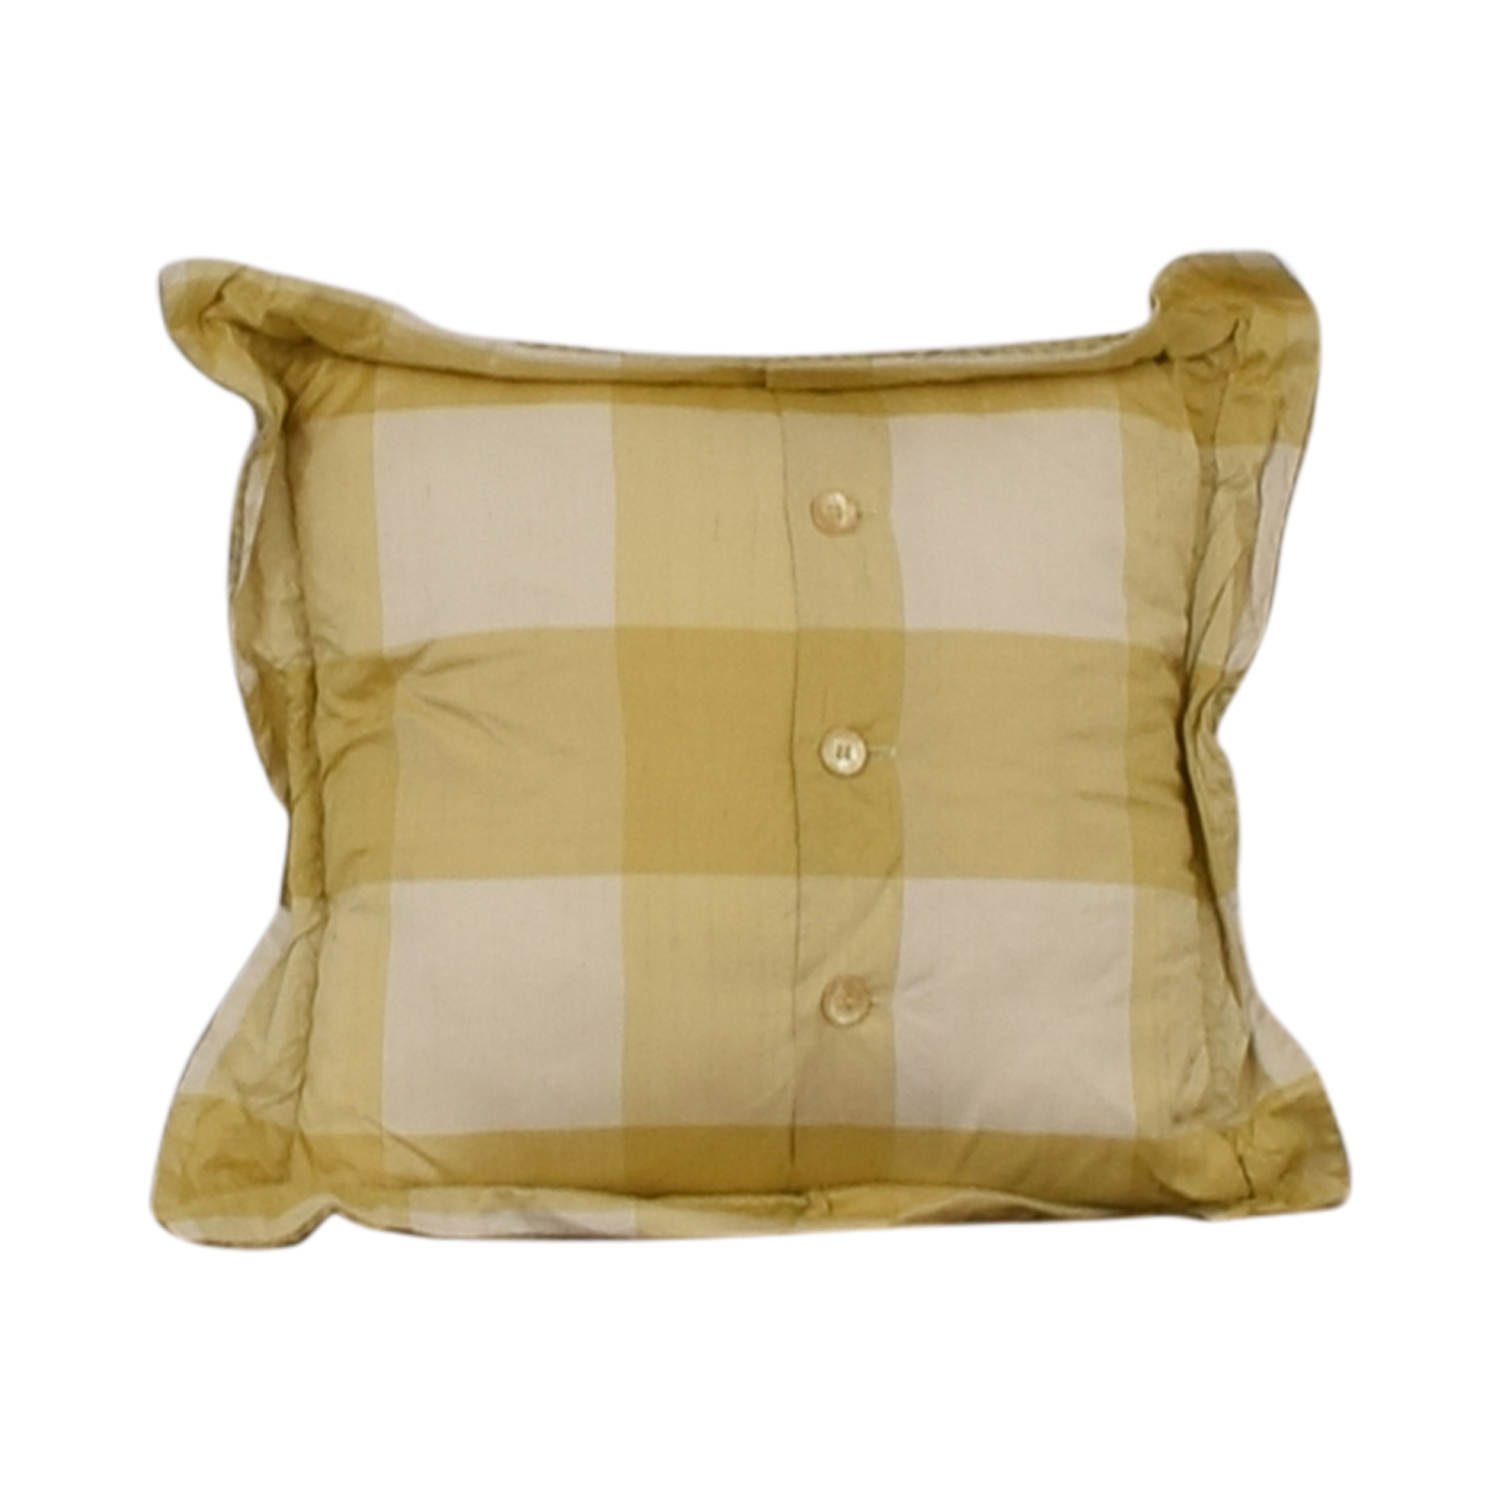 Custom Gold and White Decorative Pillow